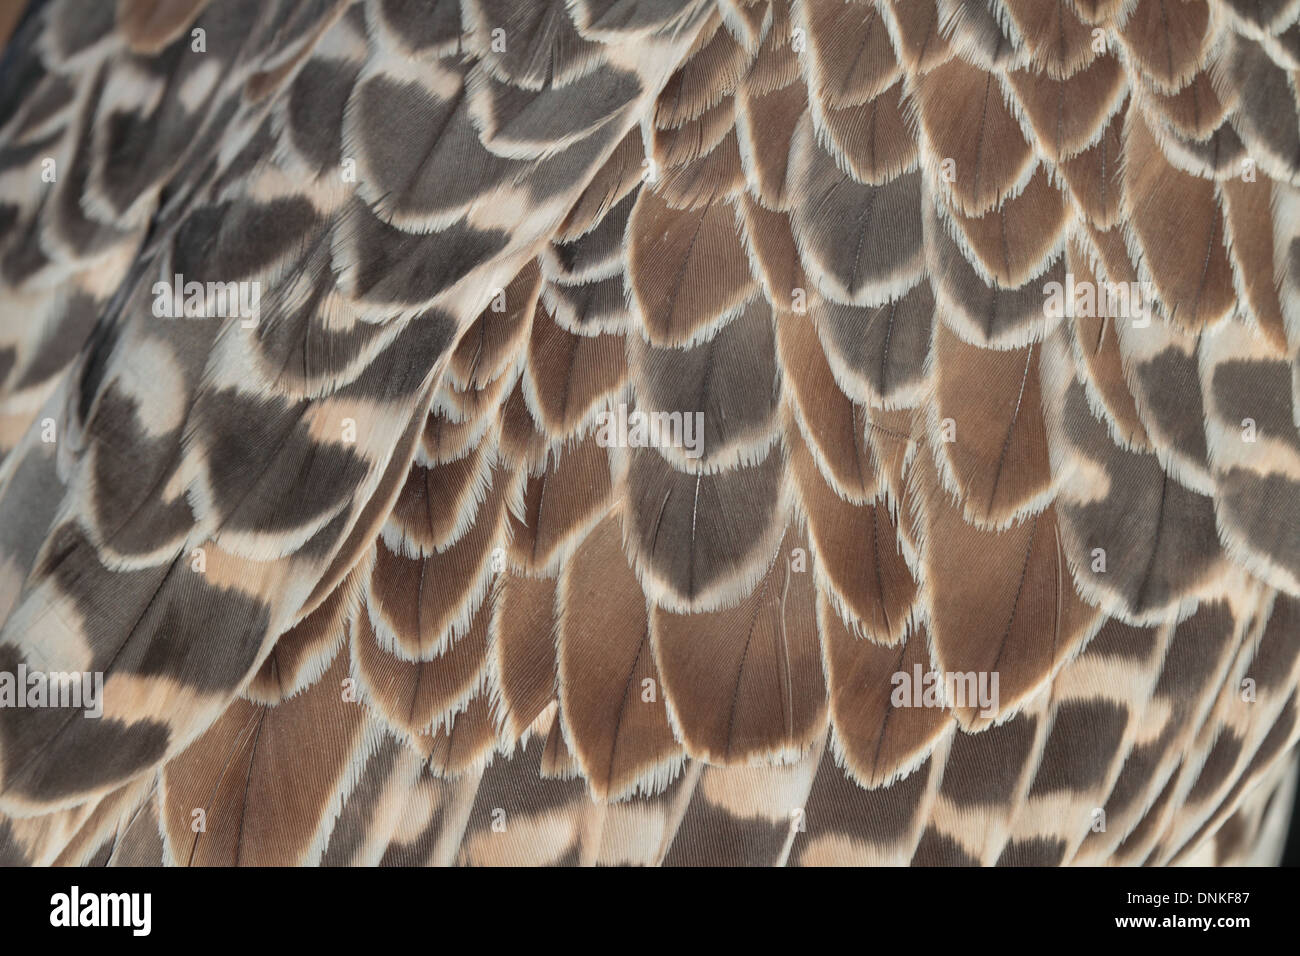 Closeup of feathers of falcon - Stock Image